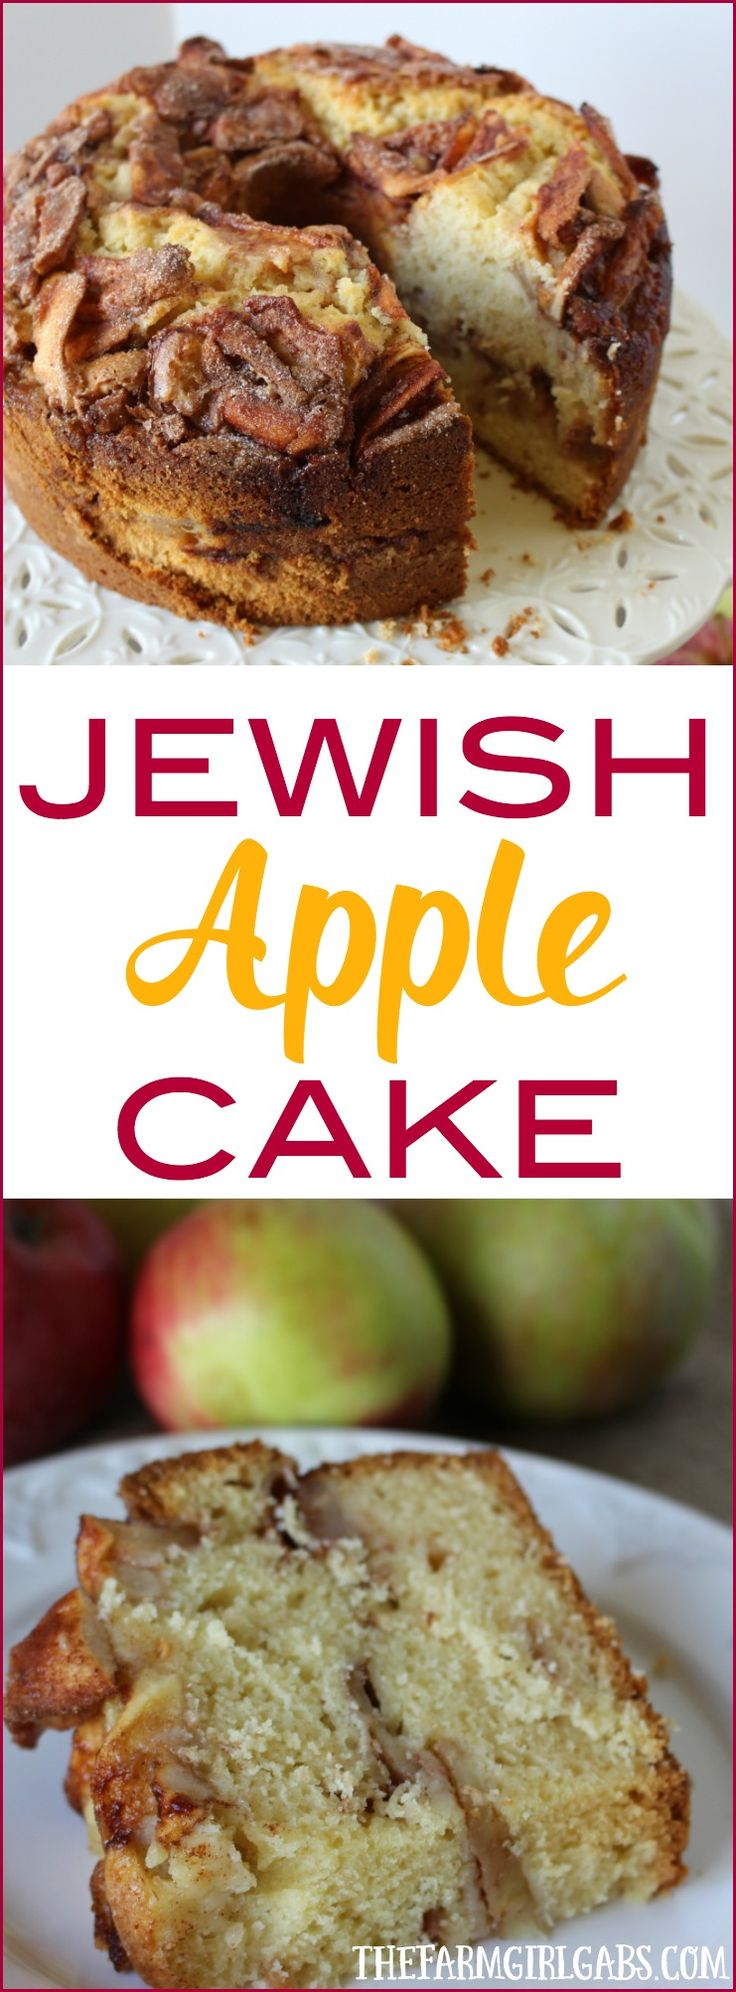 This Jewish Apple Cake recipe is moist and full of sweet apples and cinnamon. It goes perfect with a nice cup of coffee.